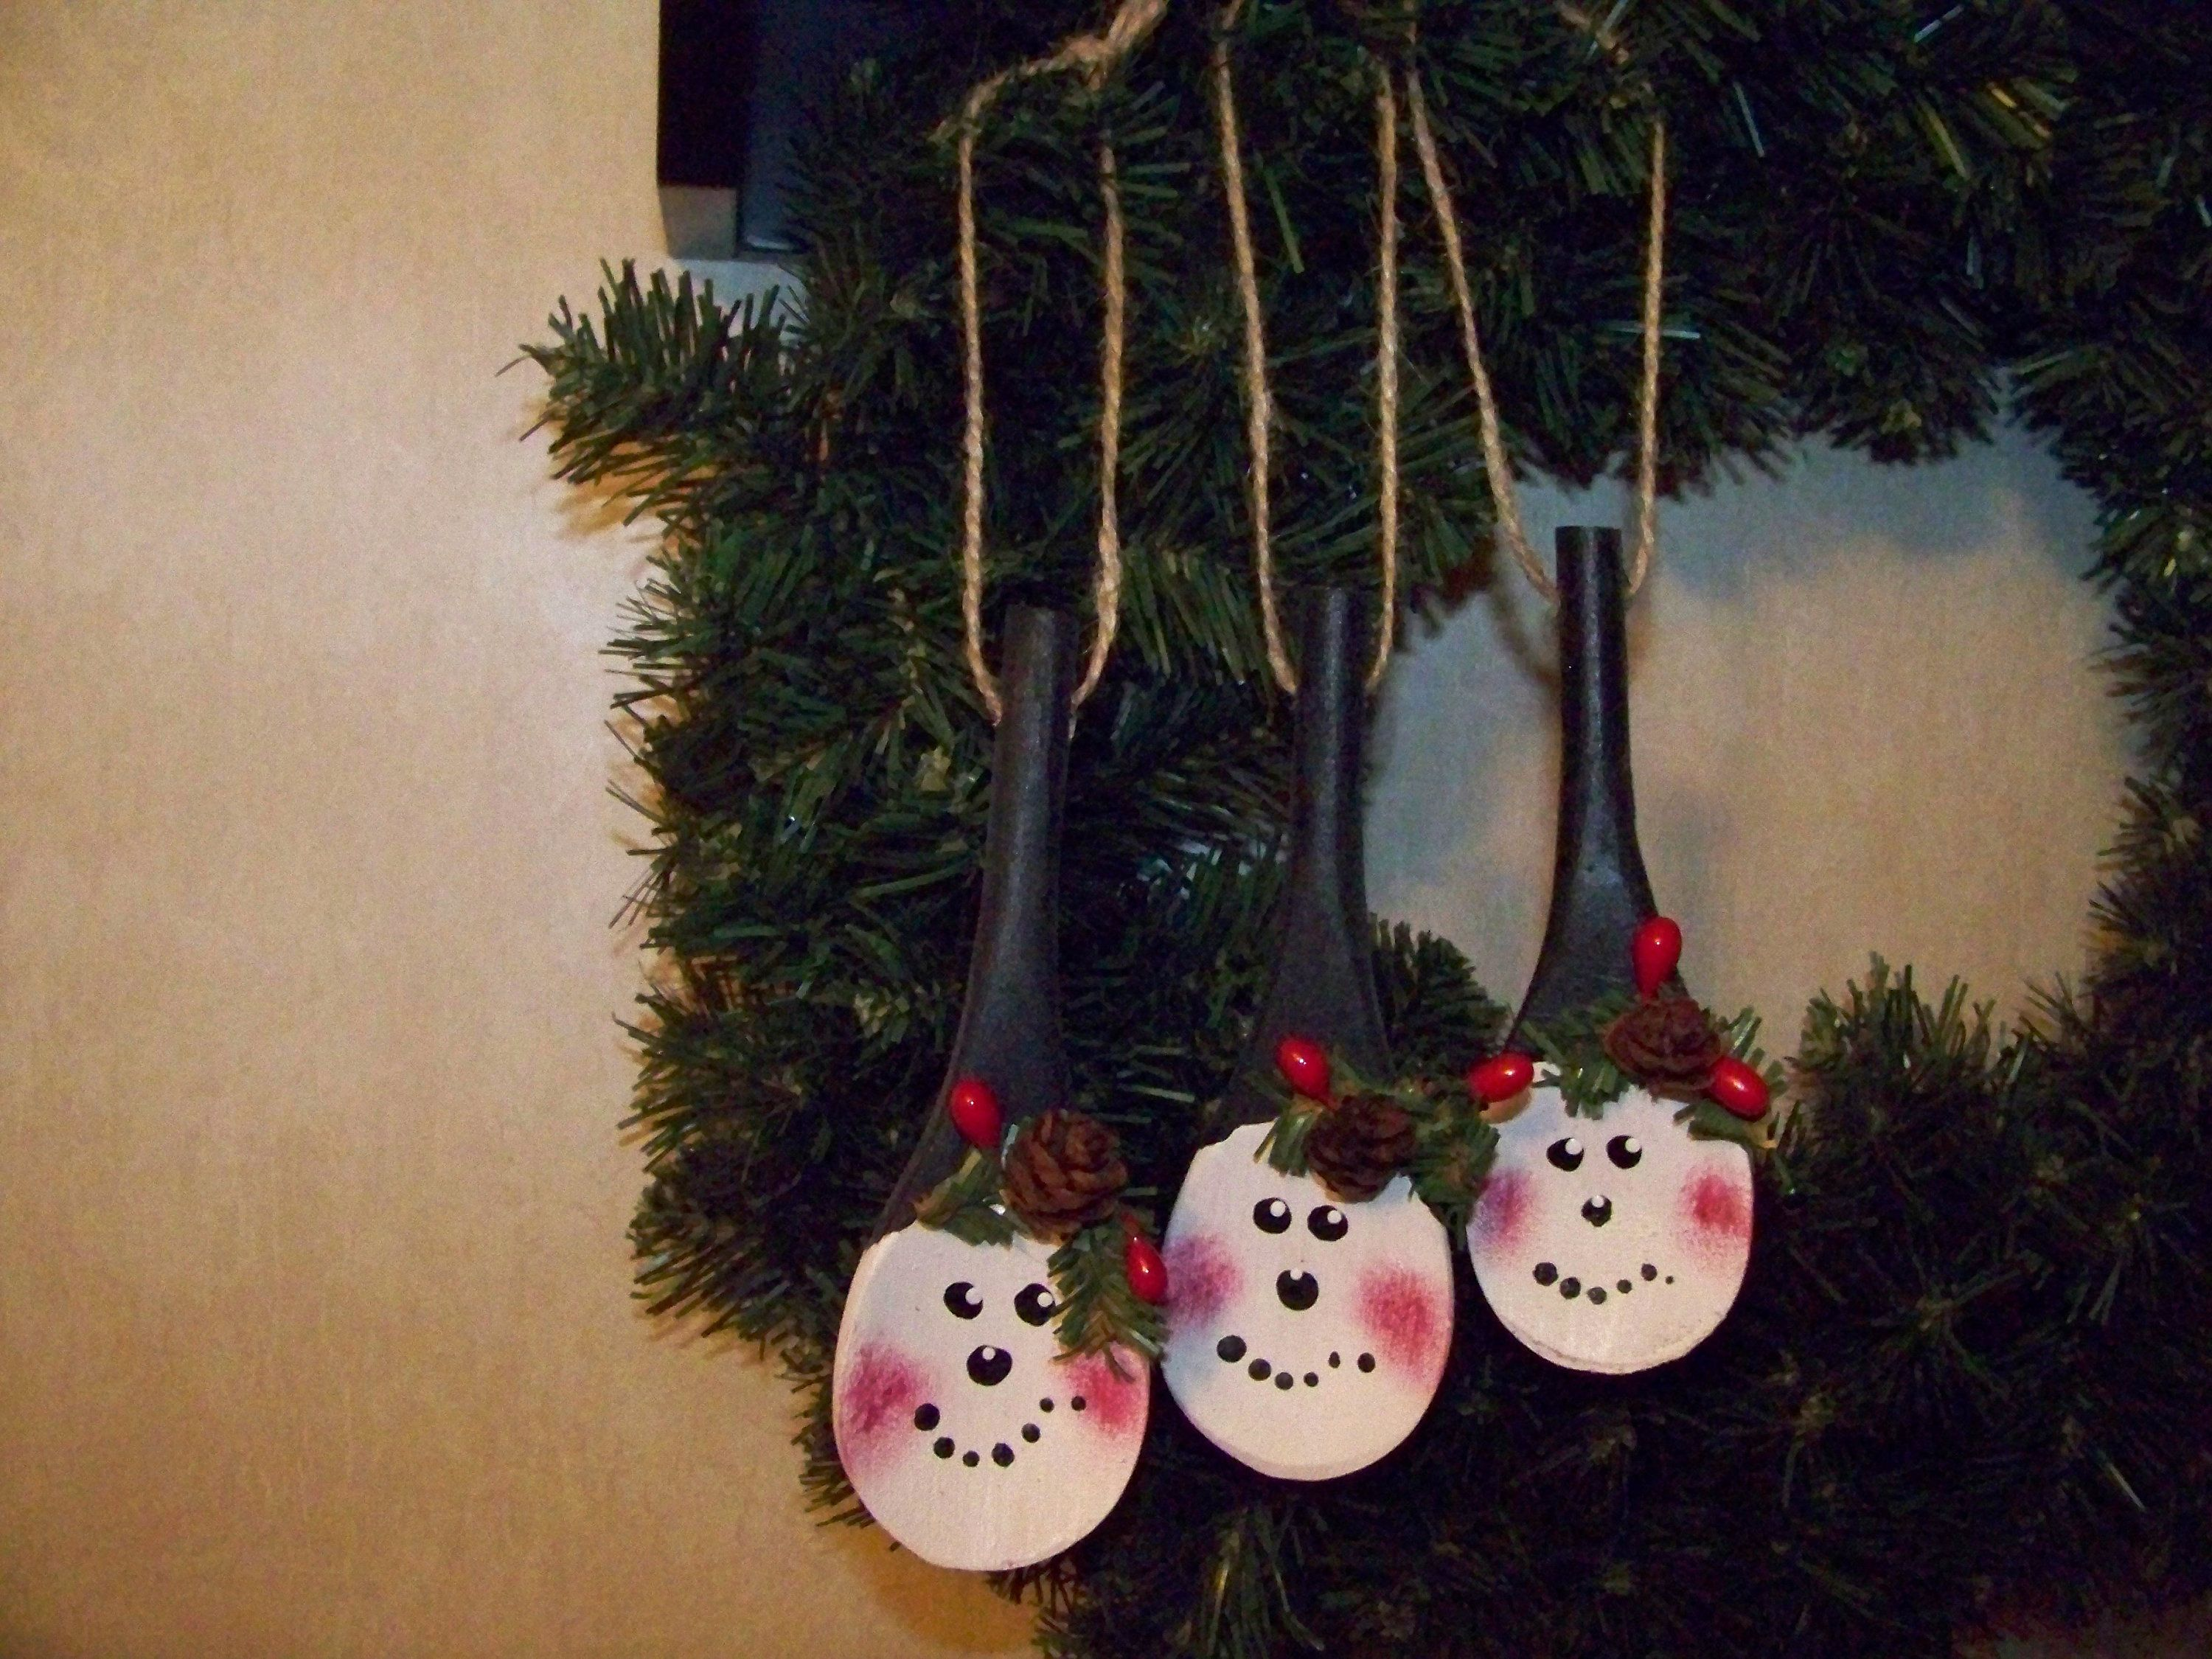 Snowman Wood Spoon Ornament Snowmen Christmas Ornament Etsy In 2021 Spoon Ornaments Diy Xmas Ornaments Wooden Spoon Crafts